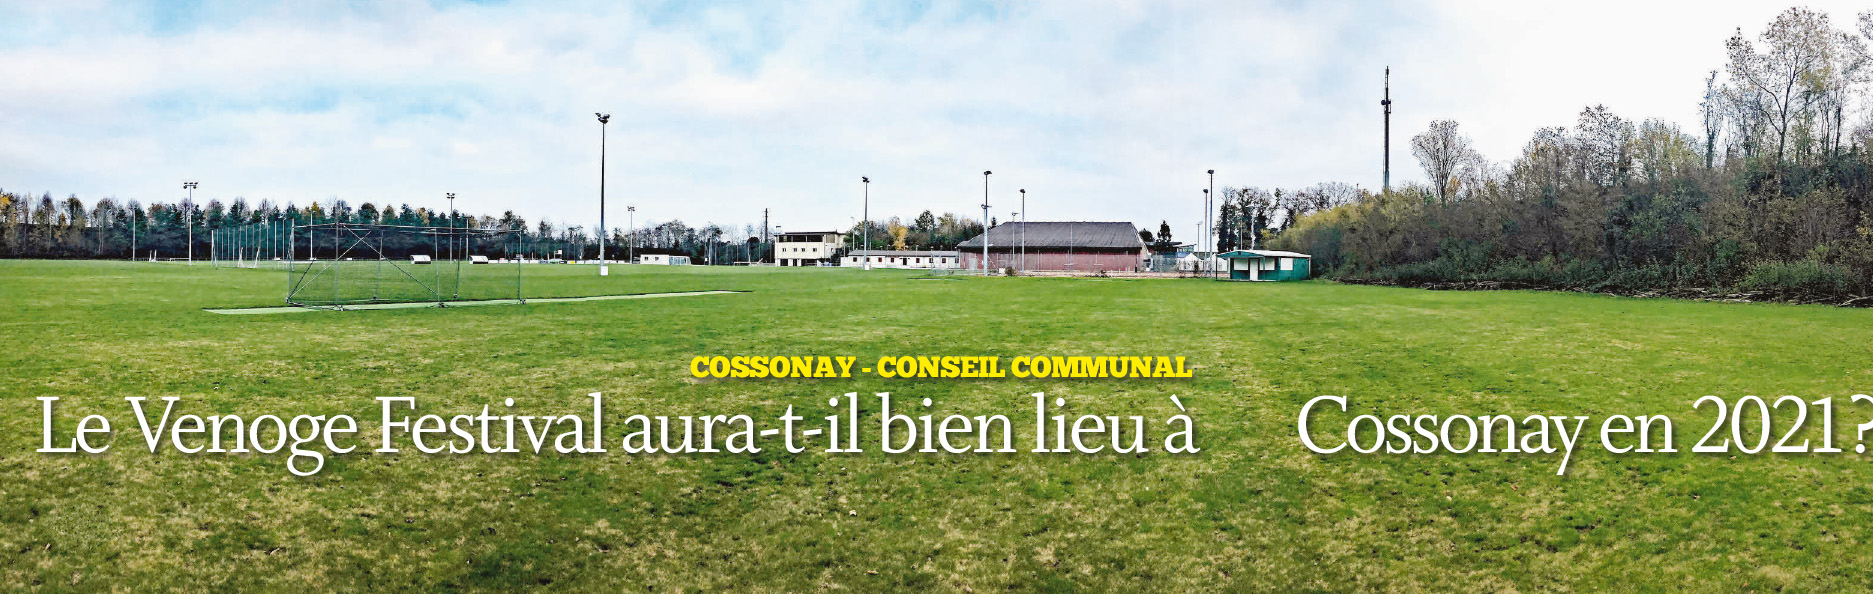 Cossonay – Conseil Communal.